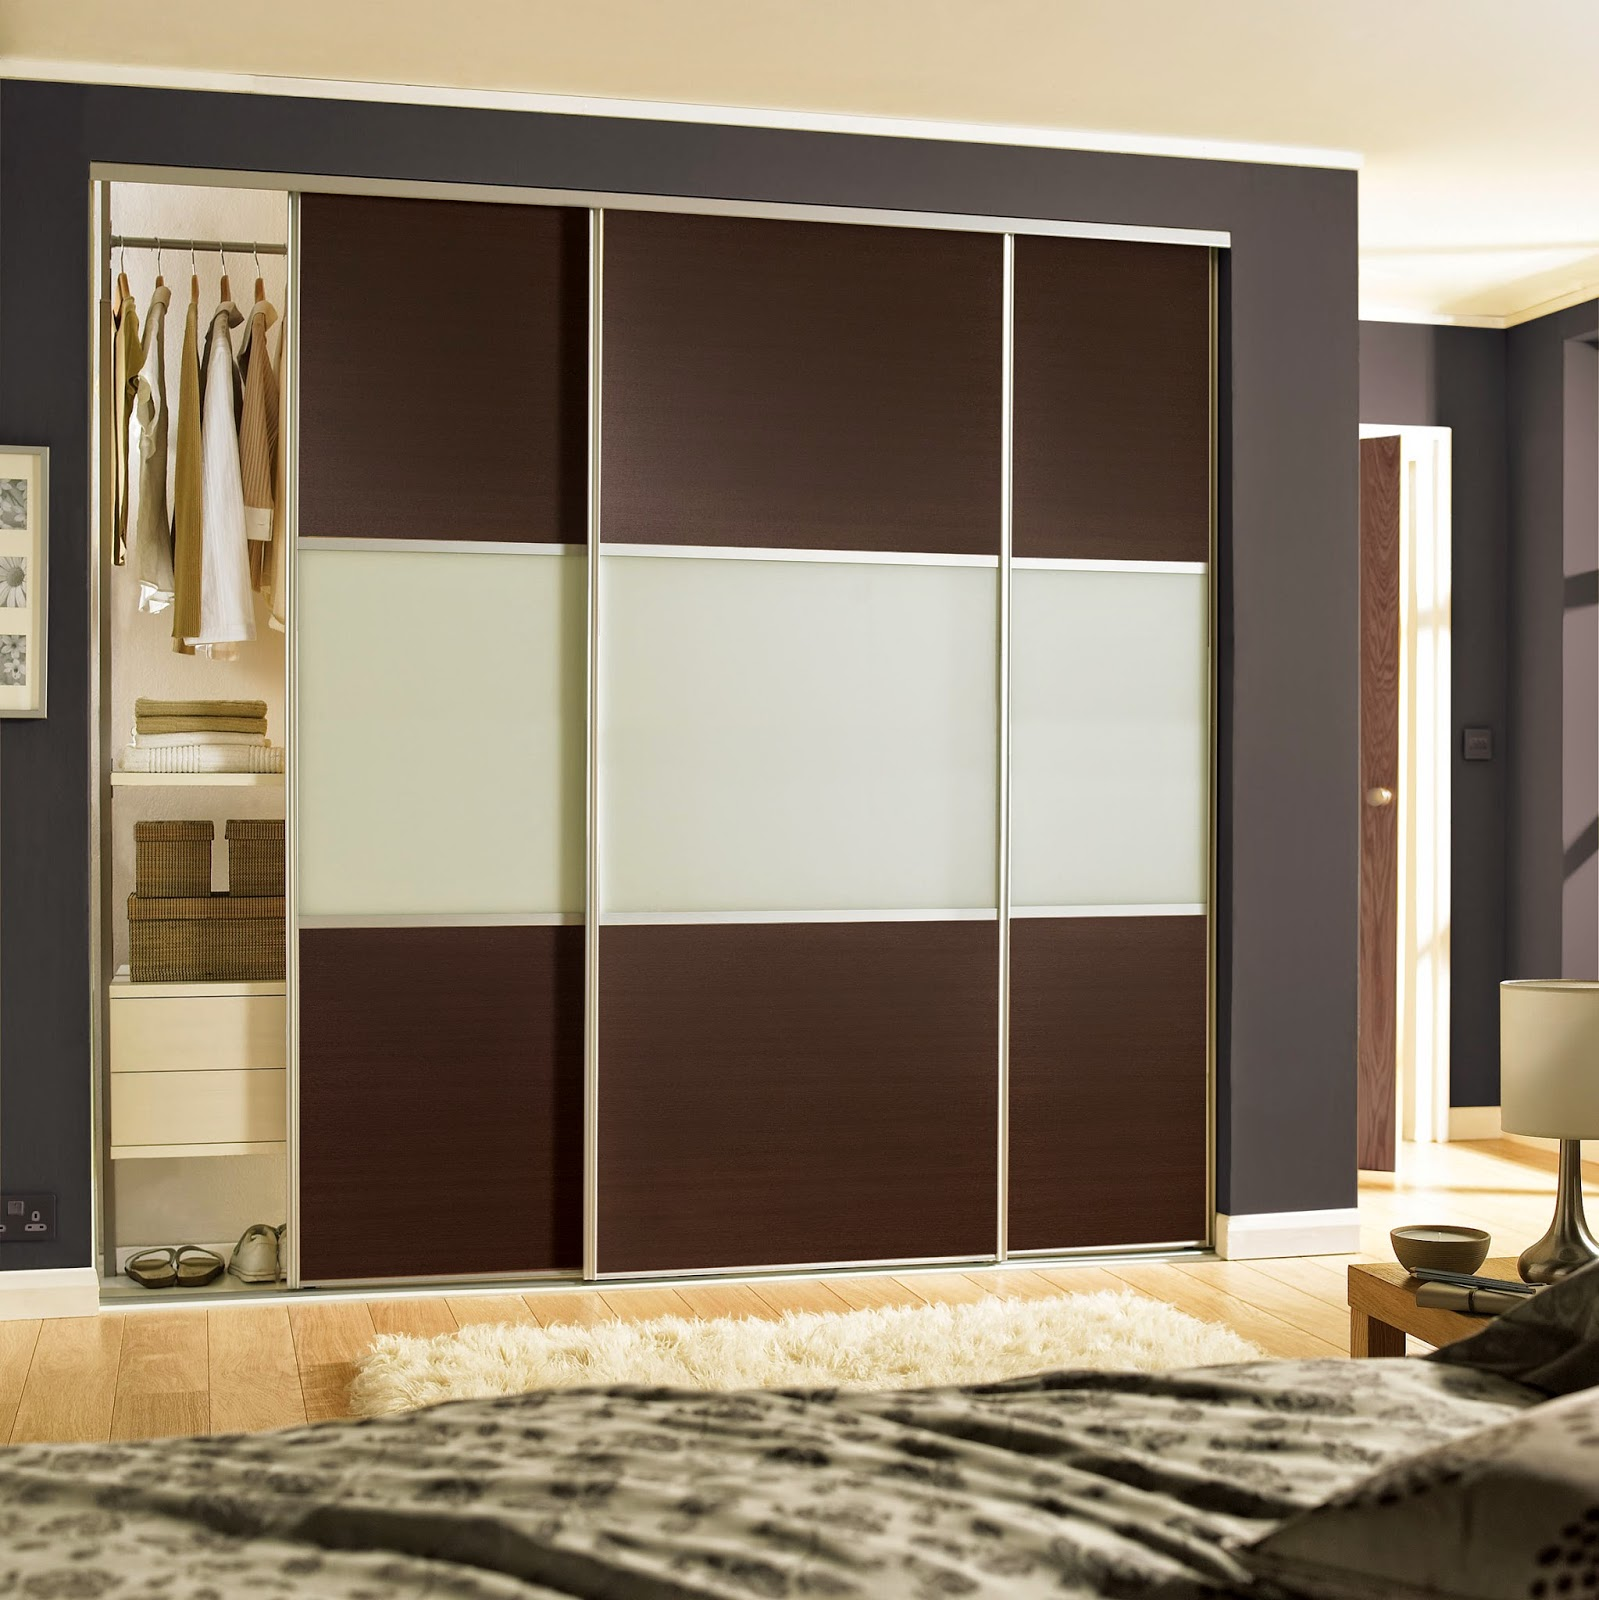 bedrooms plus sliding wardrobe doors and fittings how to measure